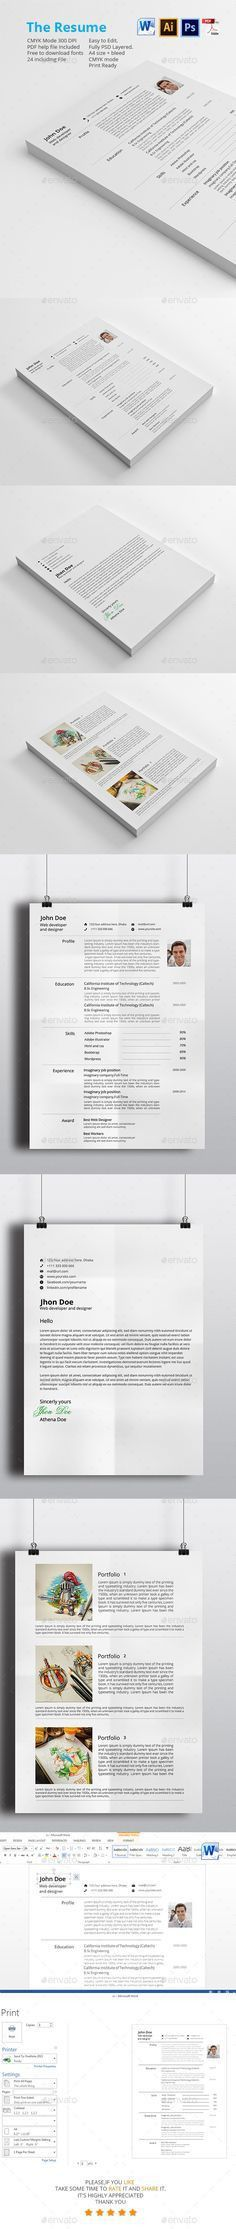 Dj / Musician Press Kit / Resume PSD Template | Download ...